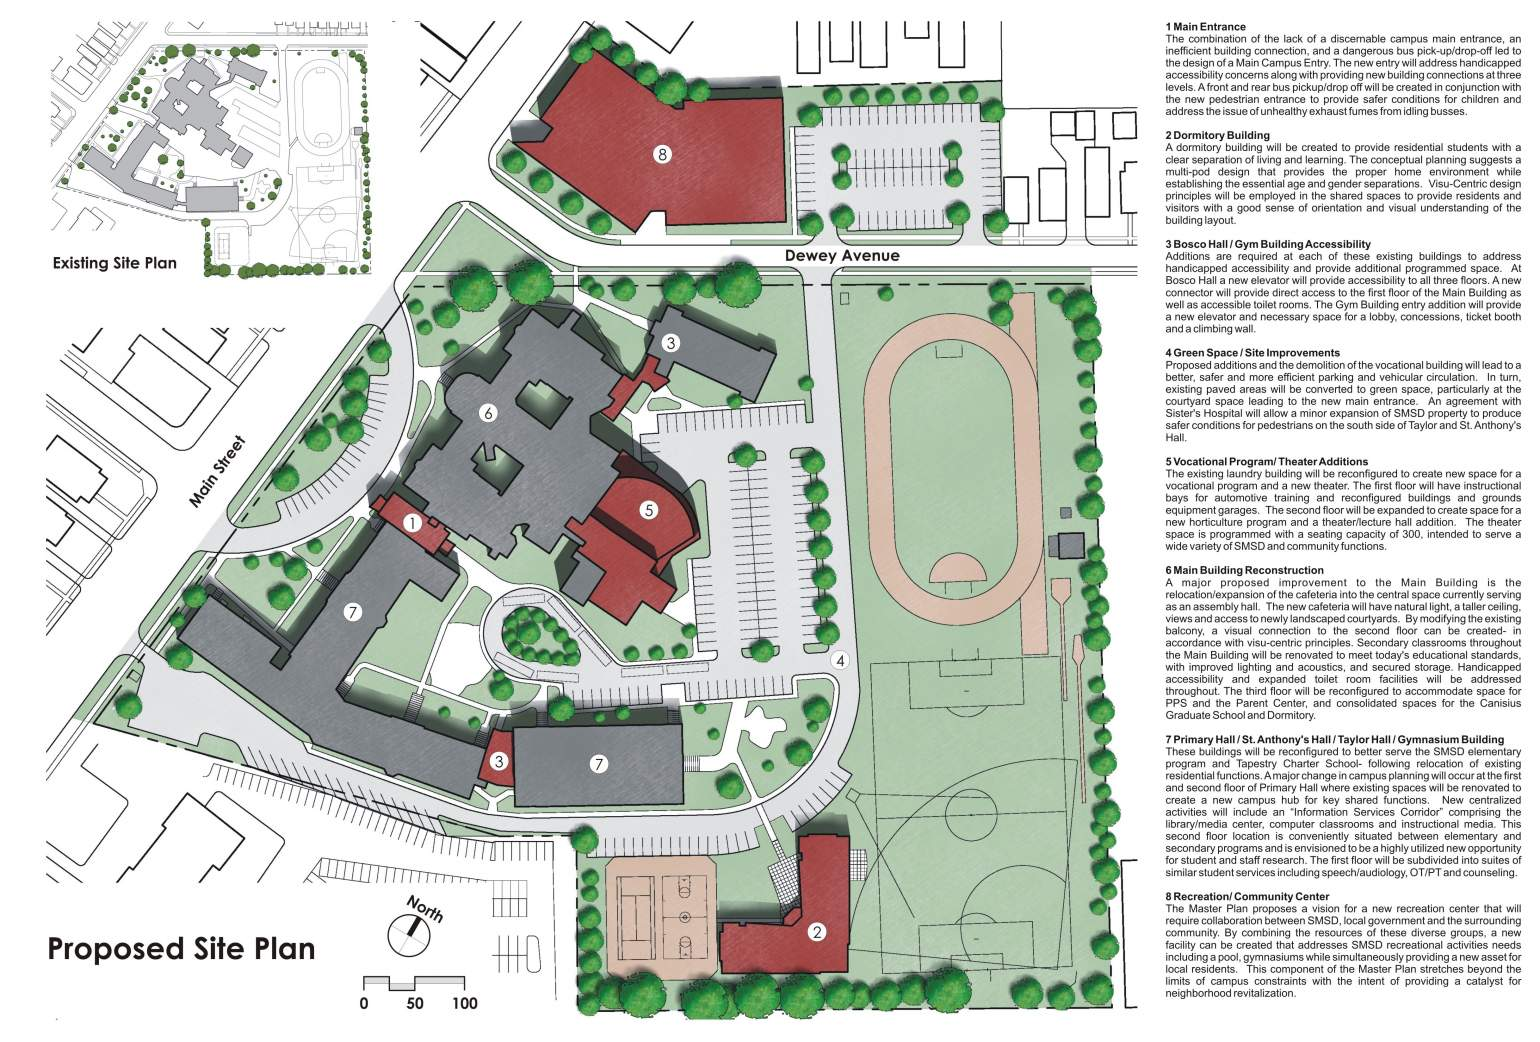 St Marys School For The Deaf Master Plan Projects Stieglitz – Site Planning Principles